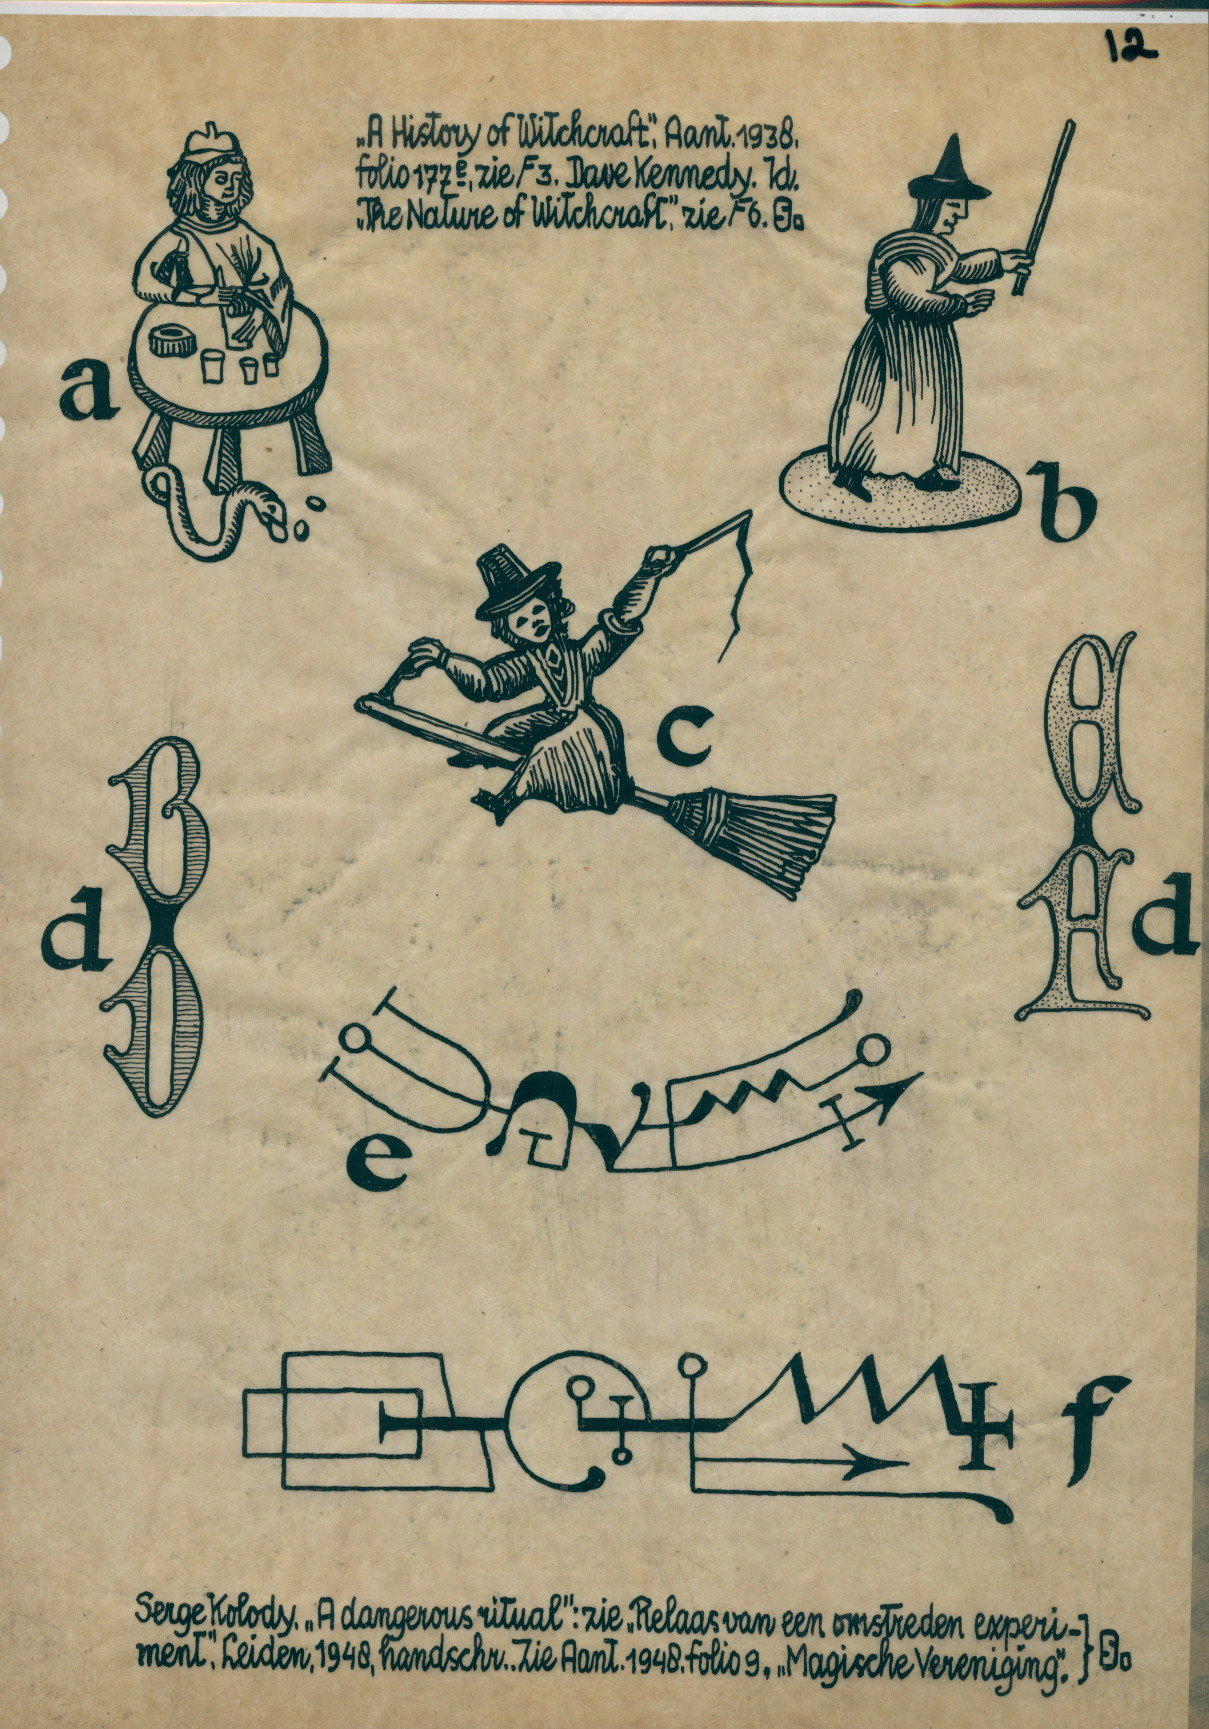 R112 drawing of witches a conjuror and symbols and notes r112 drawing of witches a conjuror and symbols and notes biocorpaavc Choice Image